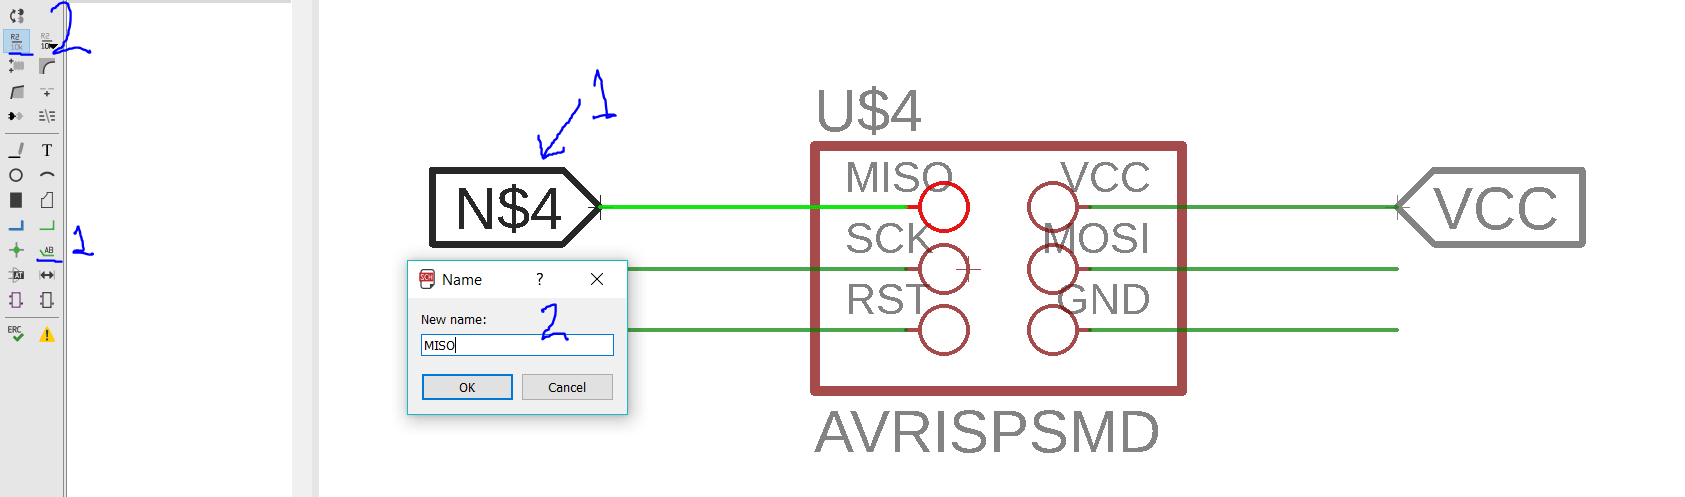 Week 6 Electronics Design Atmel Avr Isp Circuit Schematic The Full Connection Of Each Part Will Be Illustrated Separately Start With Programmer Avrisp And Ftdi Smdpin Headers